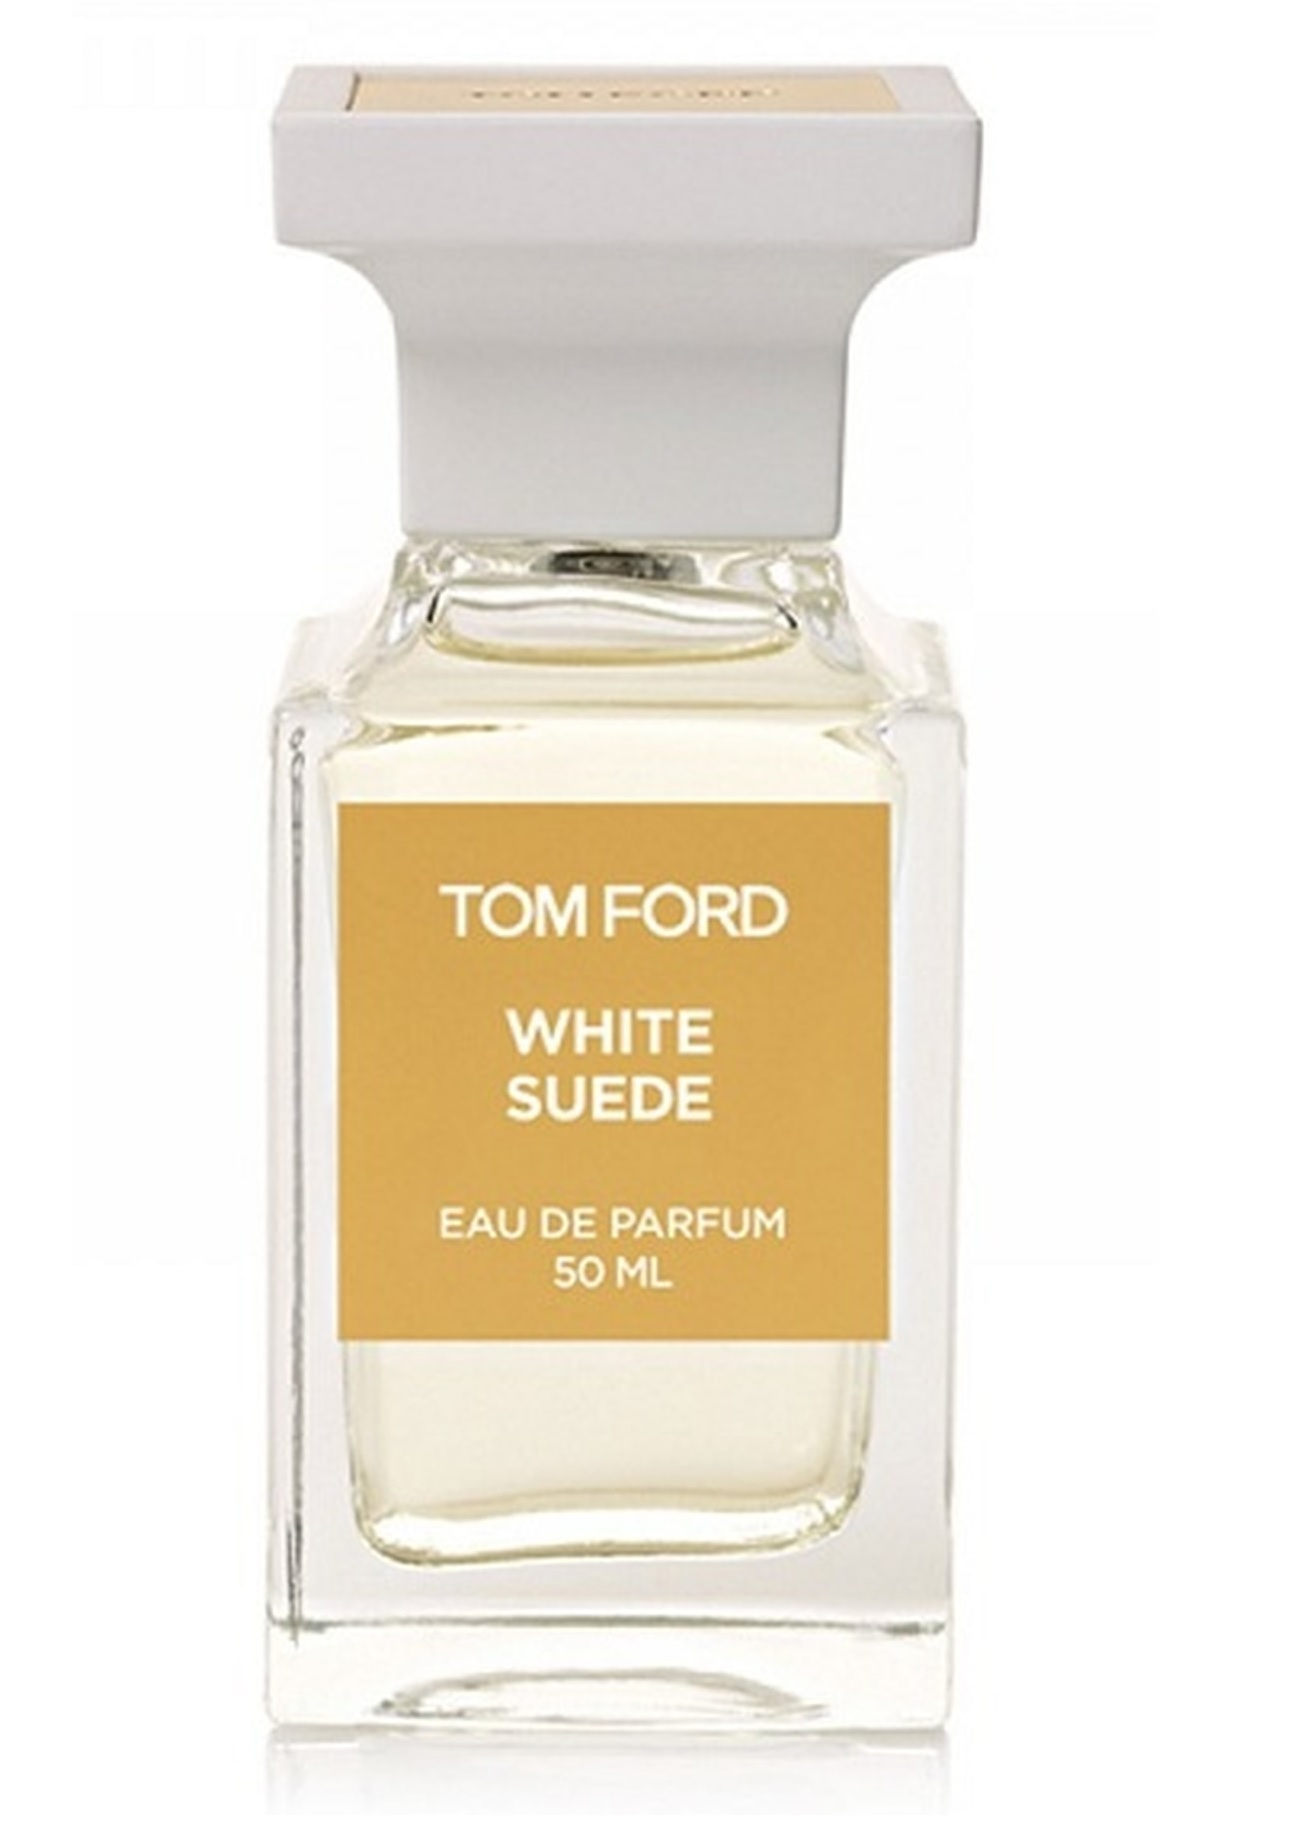 white musk collection white suede tom ford perfume a. Black Bedroom Furniture Sets. Home Design Ideas